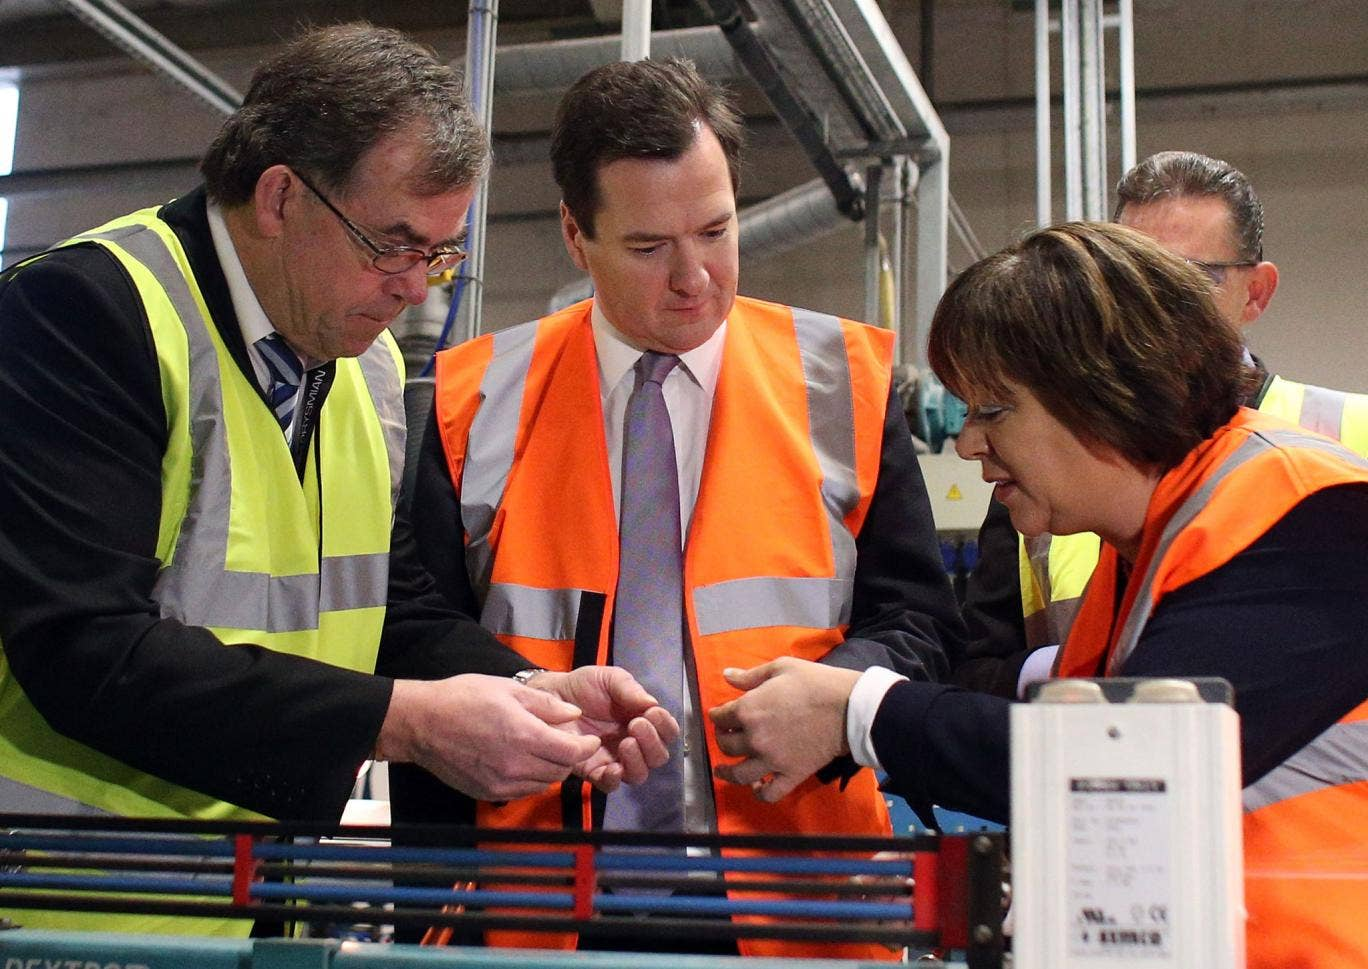 Chancellor George Osborne (C) wears a high visibility jacket as he makes a visit to the Prysmian Group factory and speaks to factory manager Steve Price